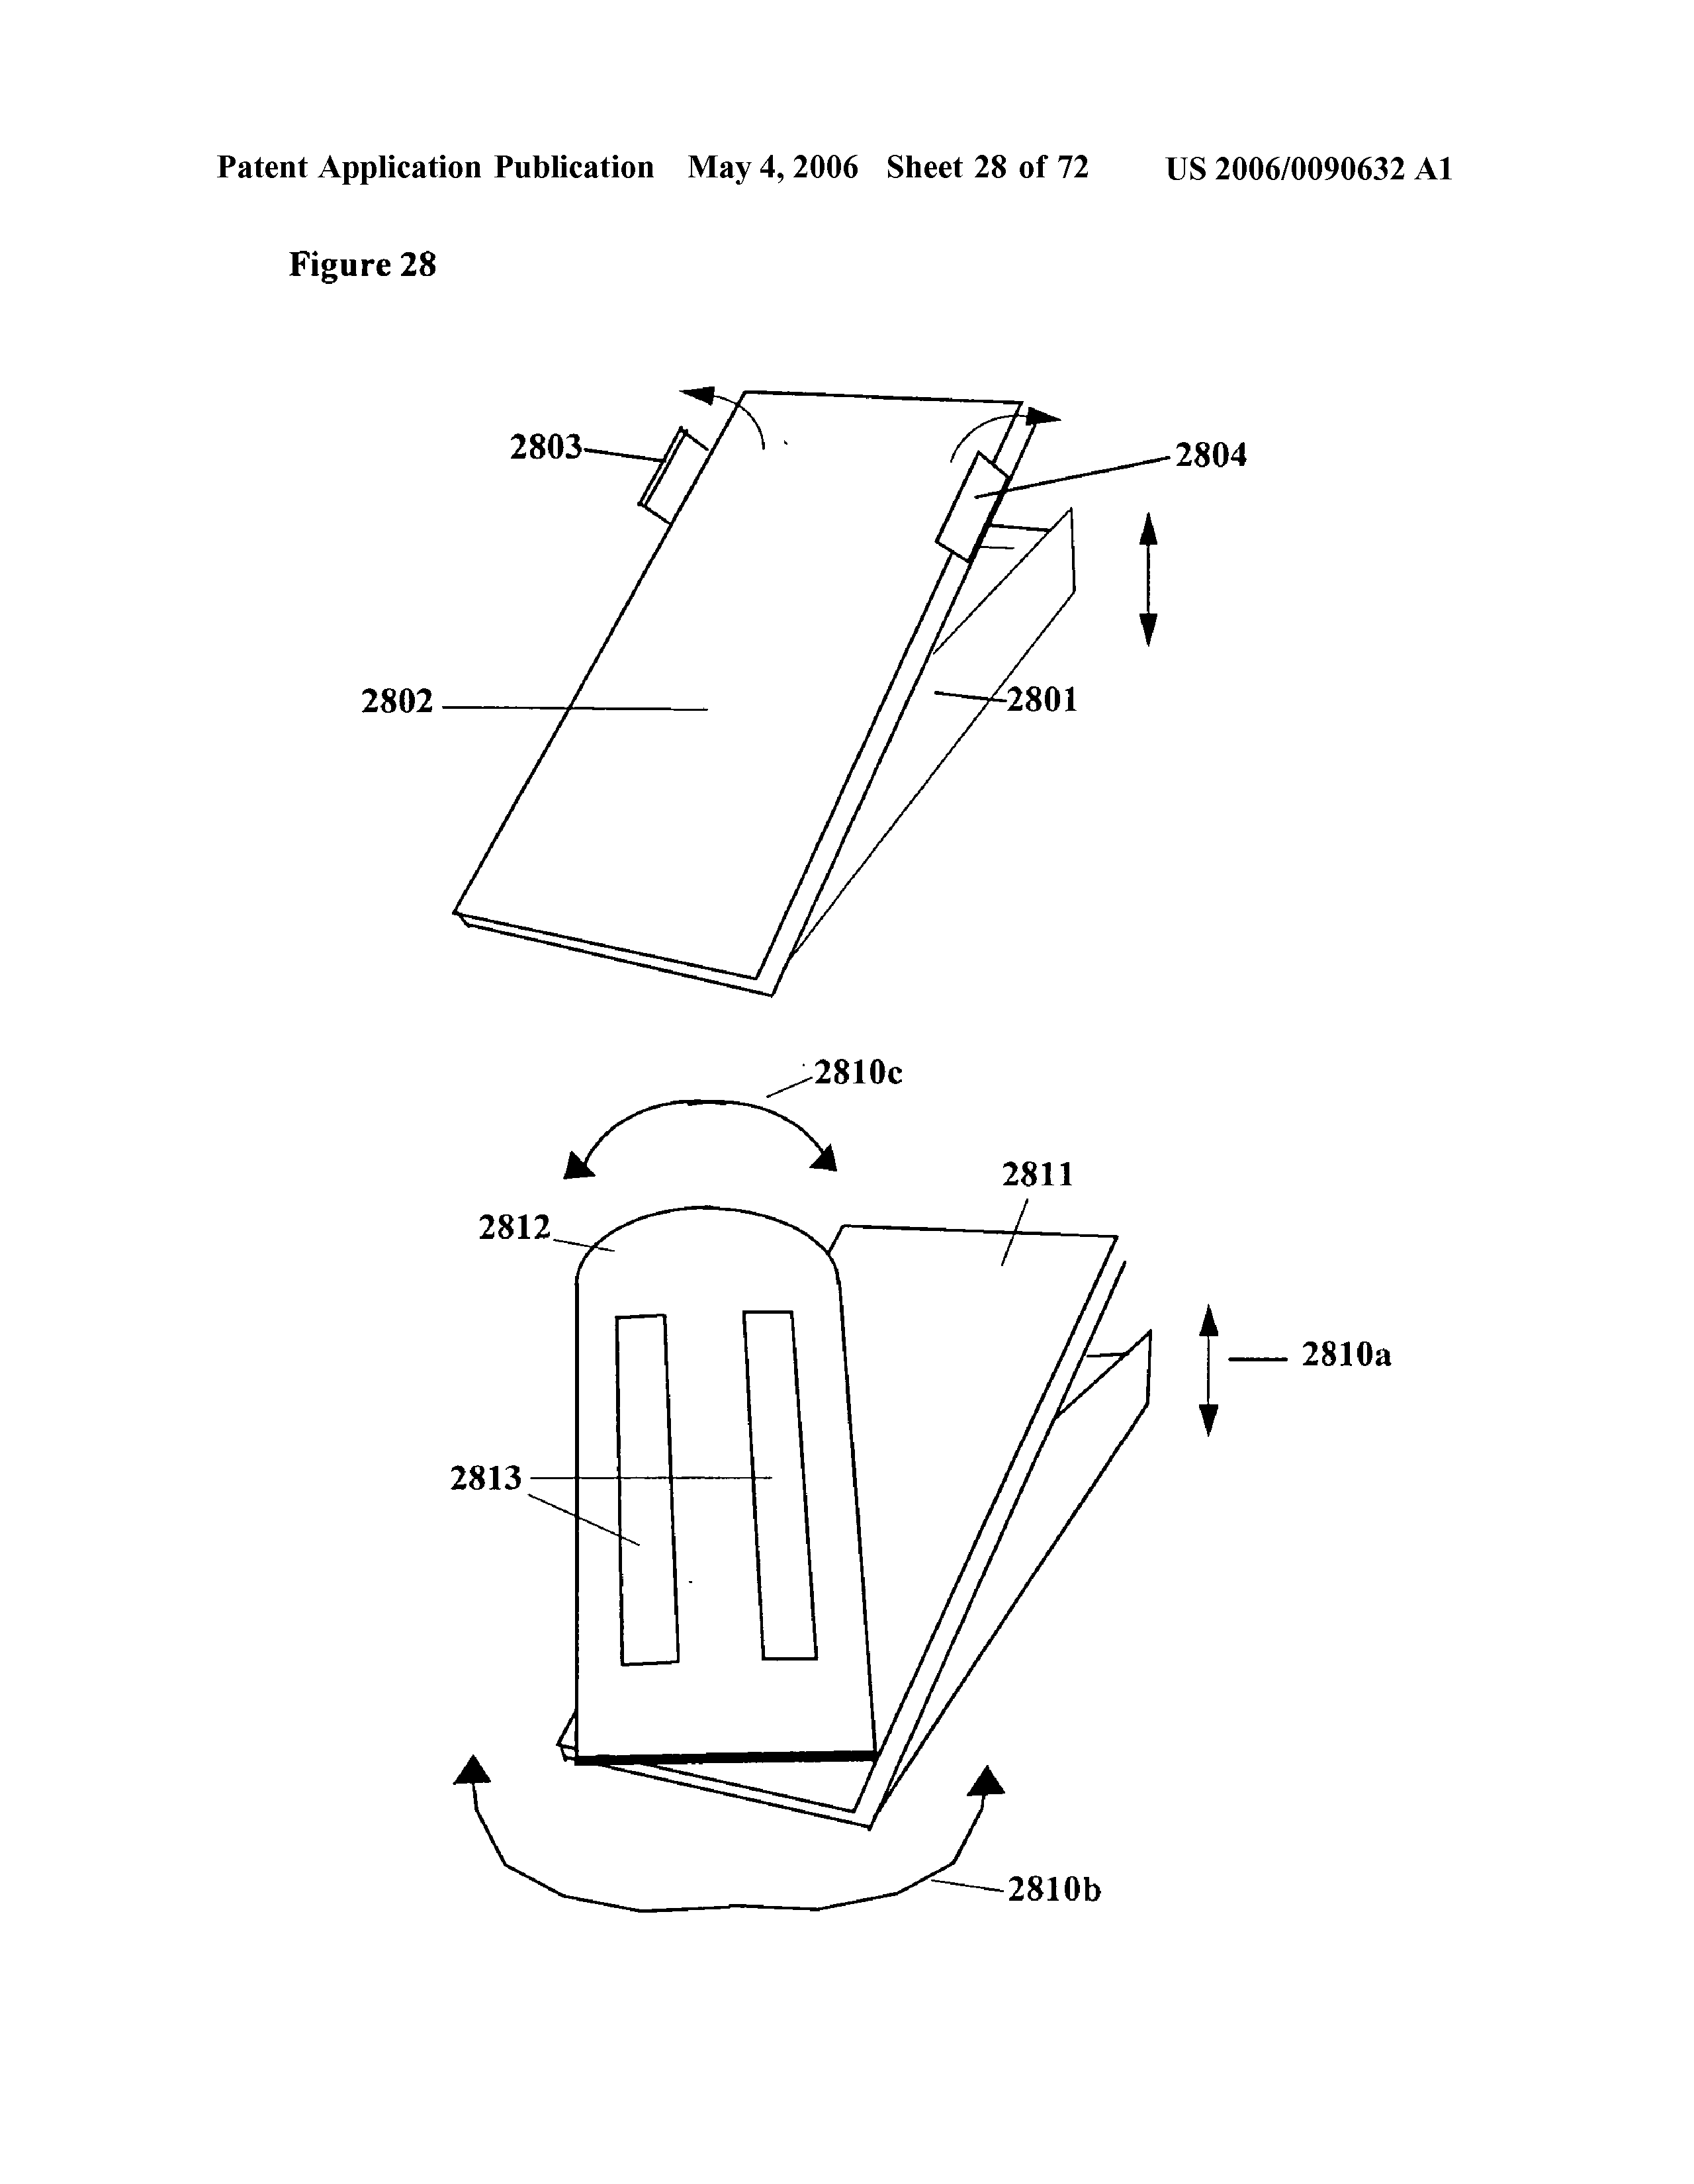 US 2006/0090632 A1 - Low Frequency Oscillator Providing Phase